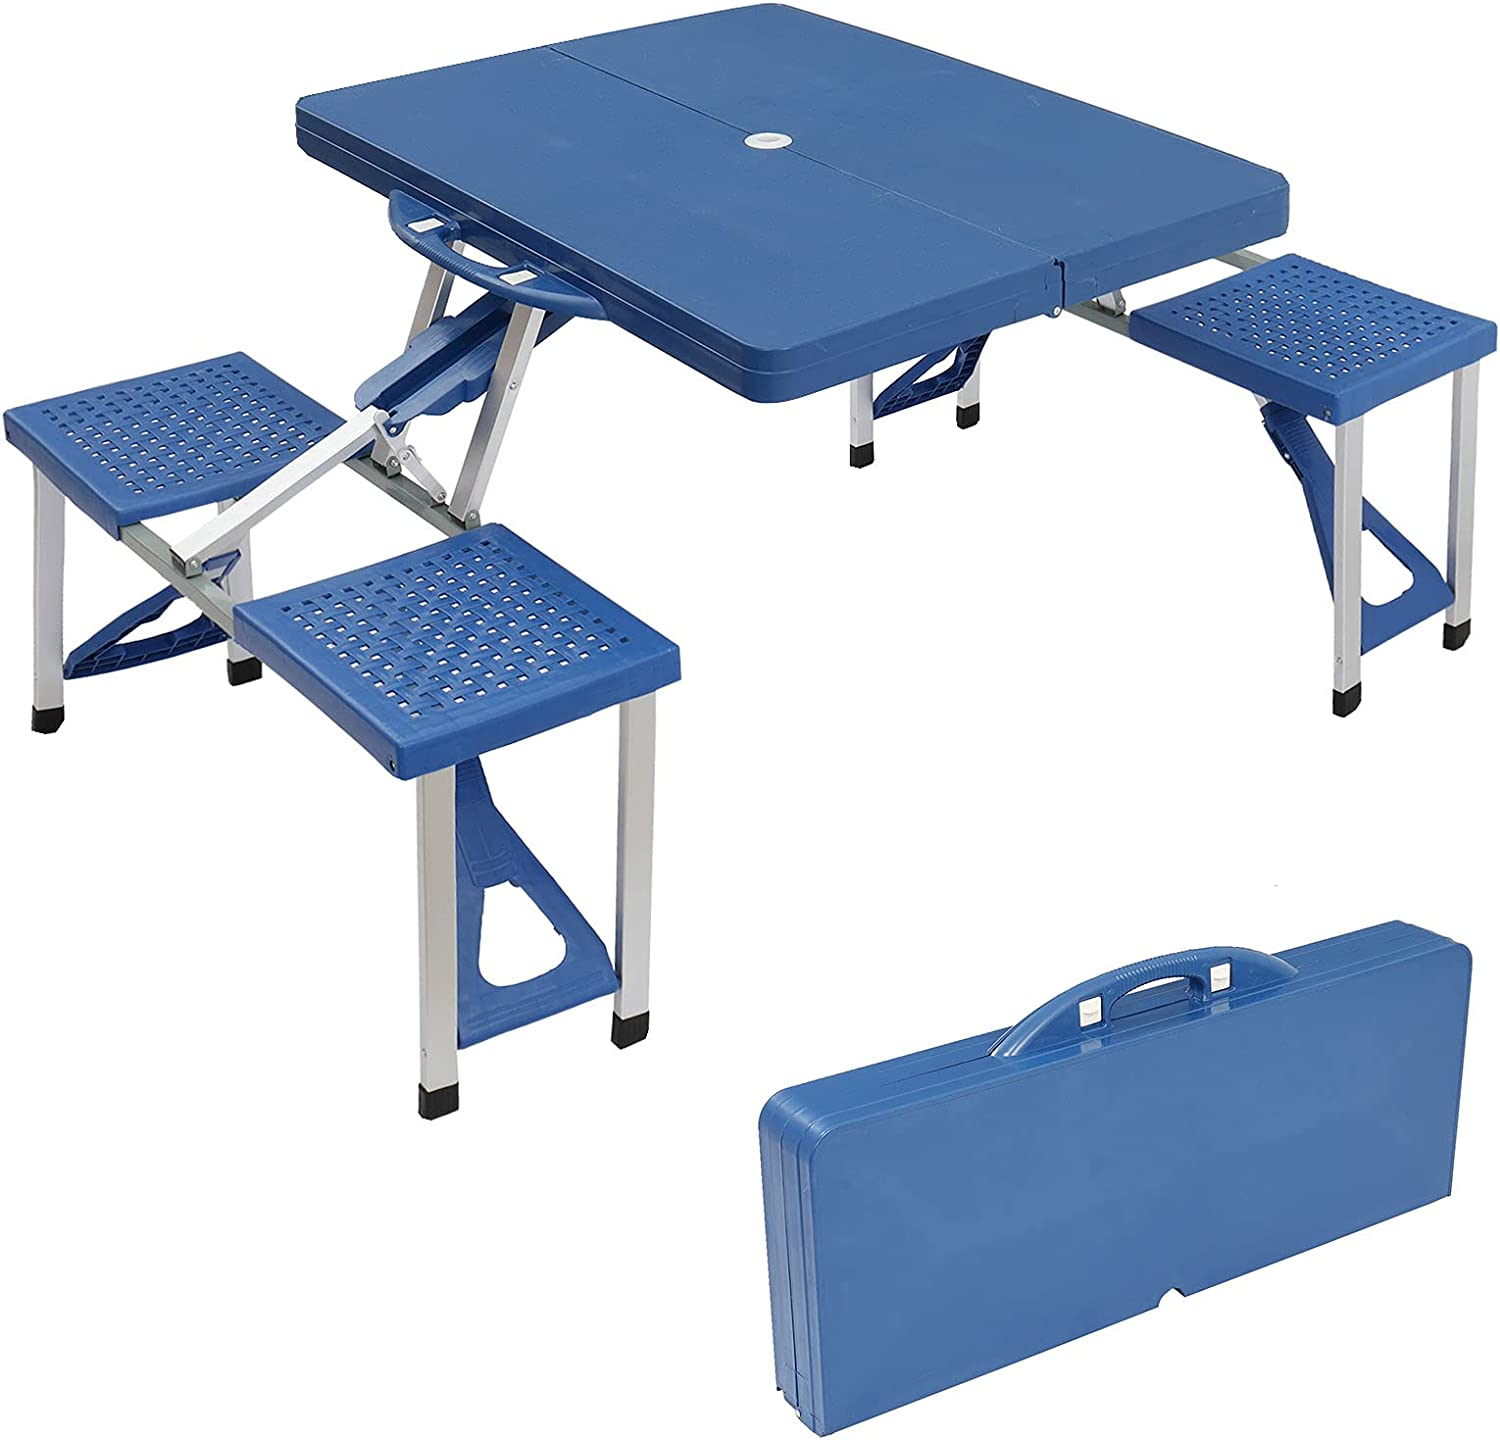 Portable Bargain Foldable Ranking TOP19 Camping Picnic Table 4 Patio with U Seats